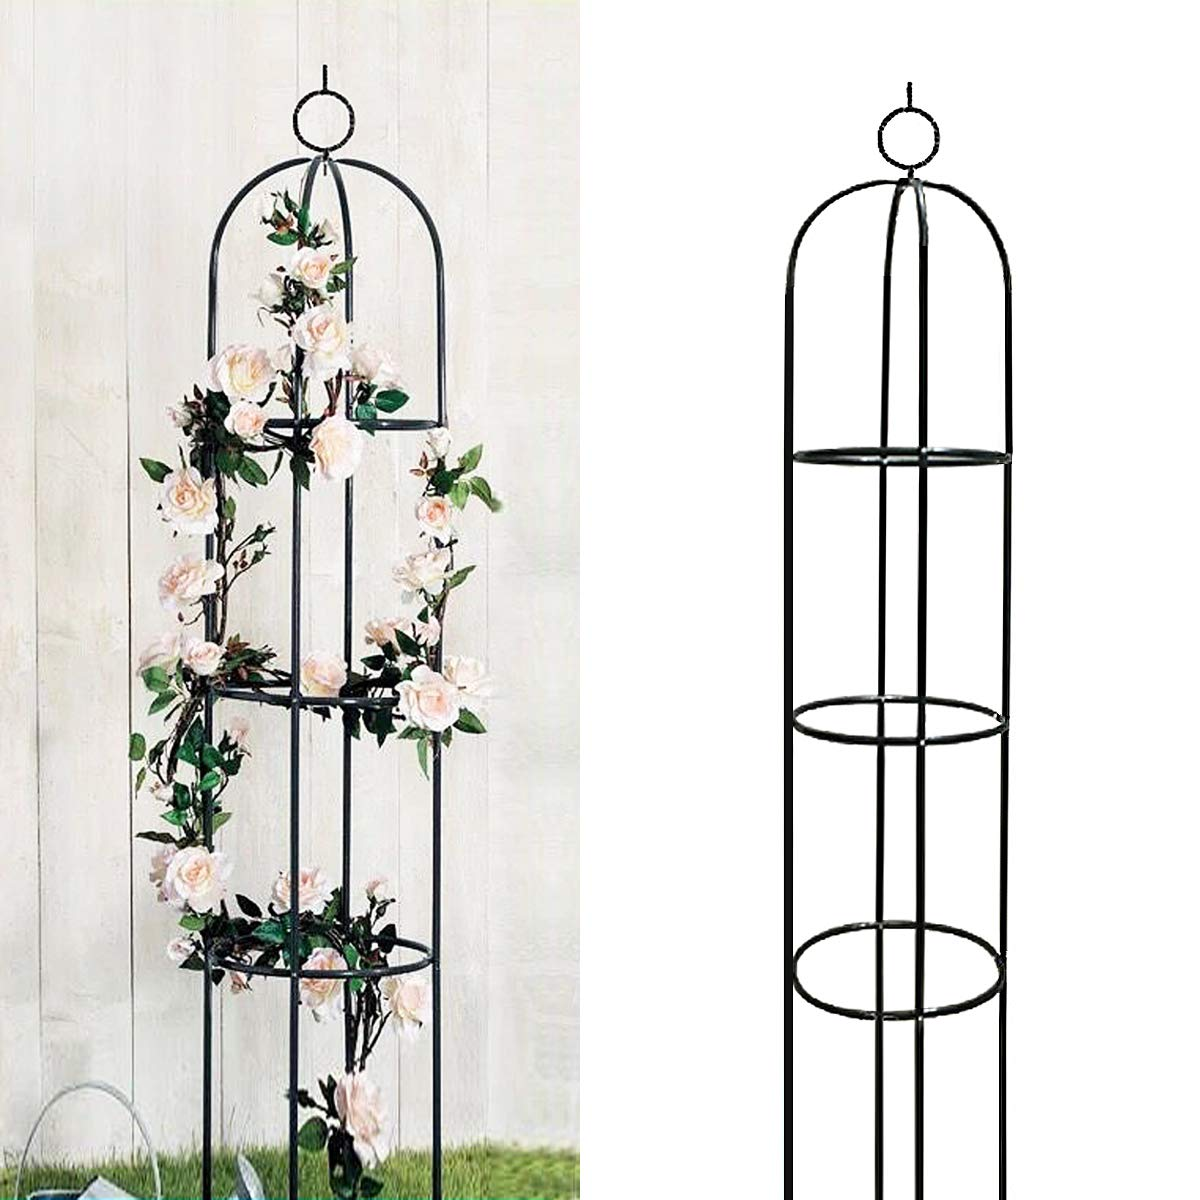 Garden Plant Trellis Plant Support for Climbing Vines and Flowers Stands 6.3 Feet Tall,Black Green Lightweight Plant Tower